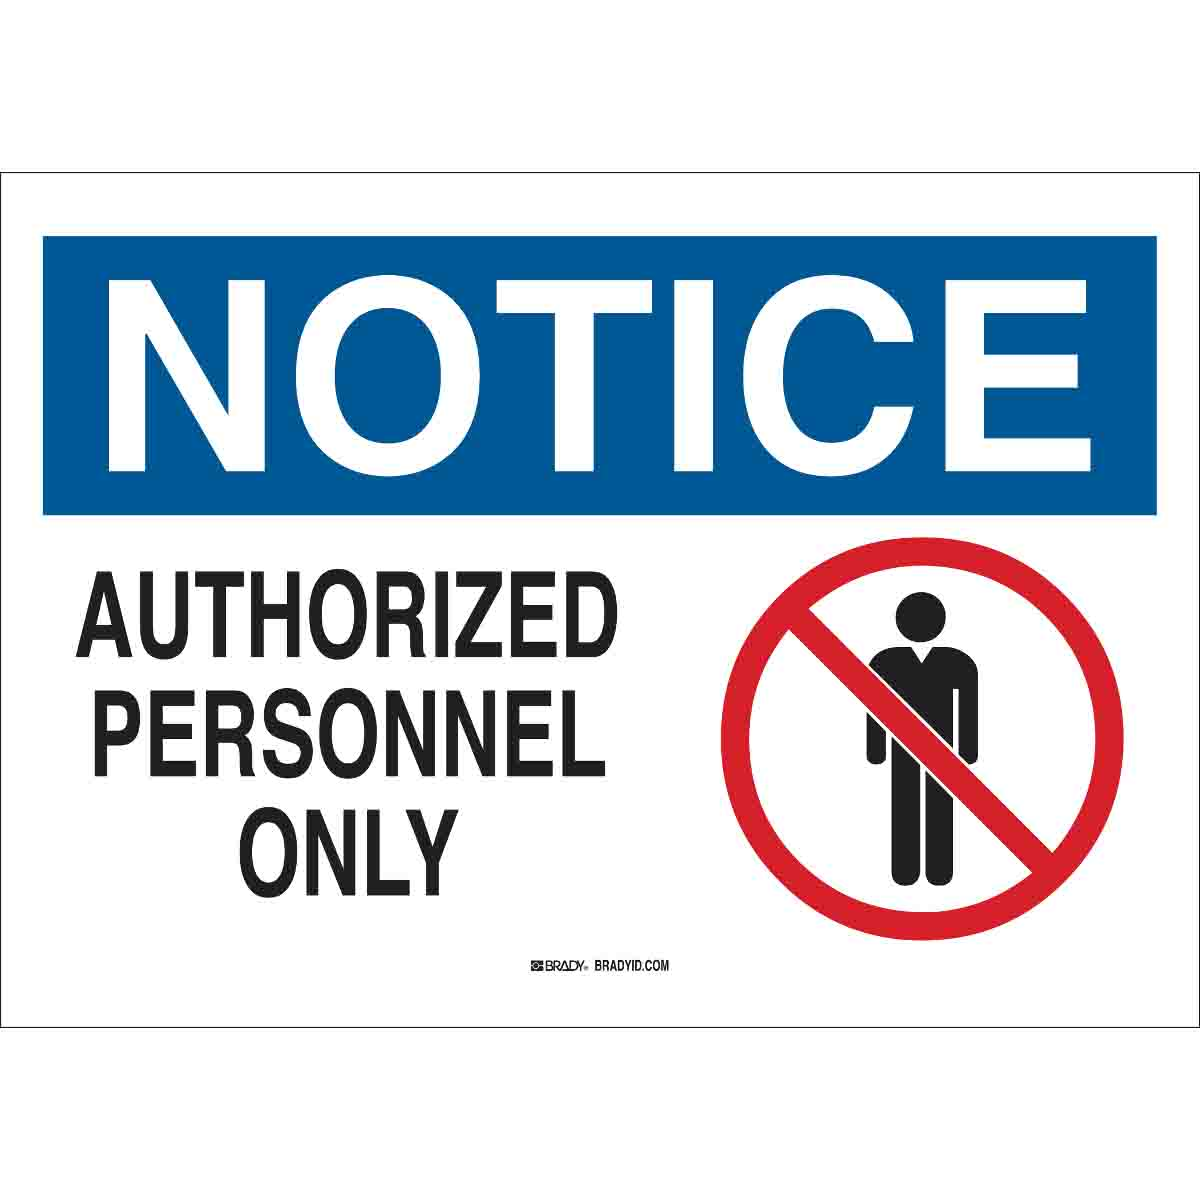 This is an image of Revered Authorized Personnel Only Sign Printable